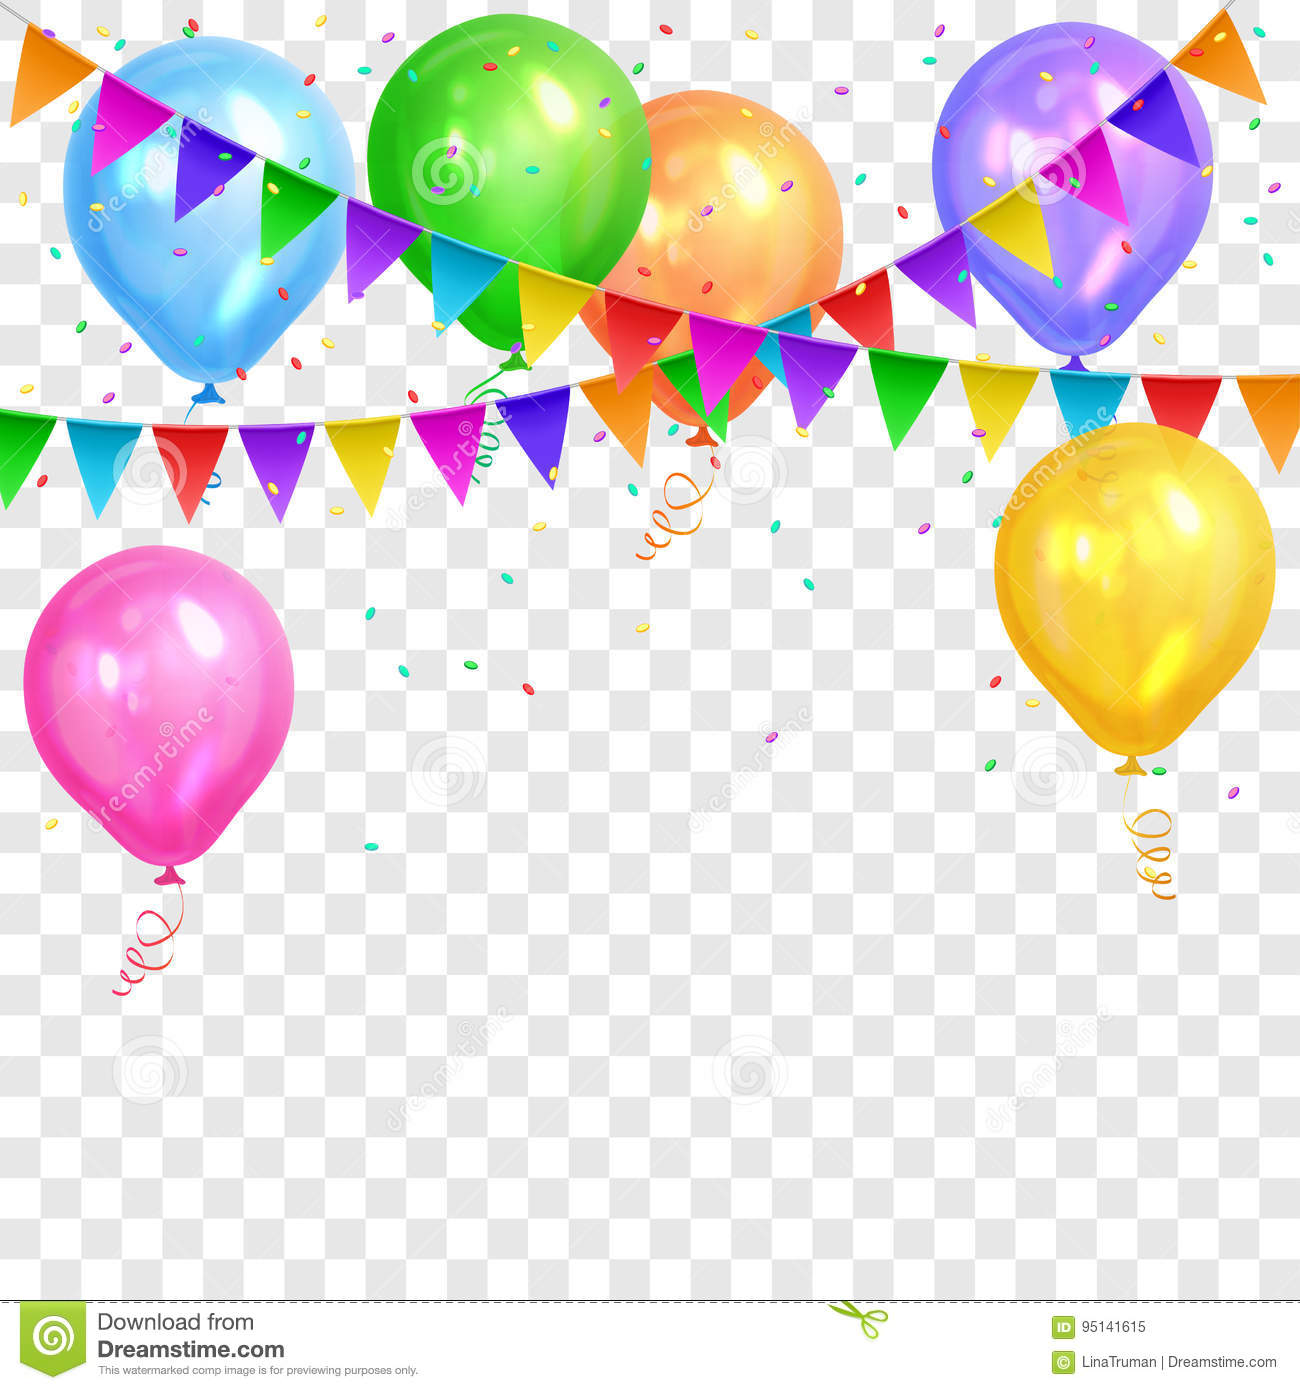 birthday balloon border ; border-realistic-colorful-helium-balloons-flags-garlands-transparent-background-party-decoration-frame-birthday-95141615